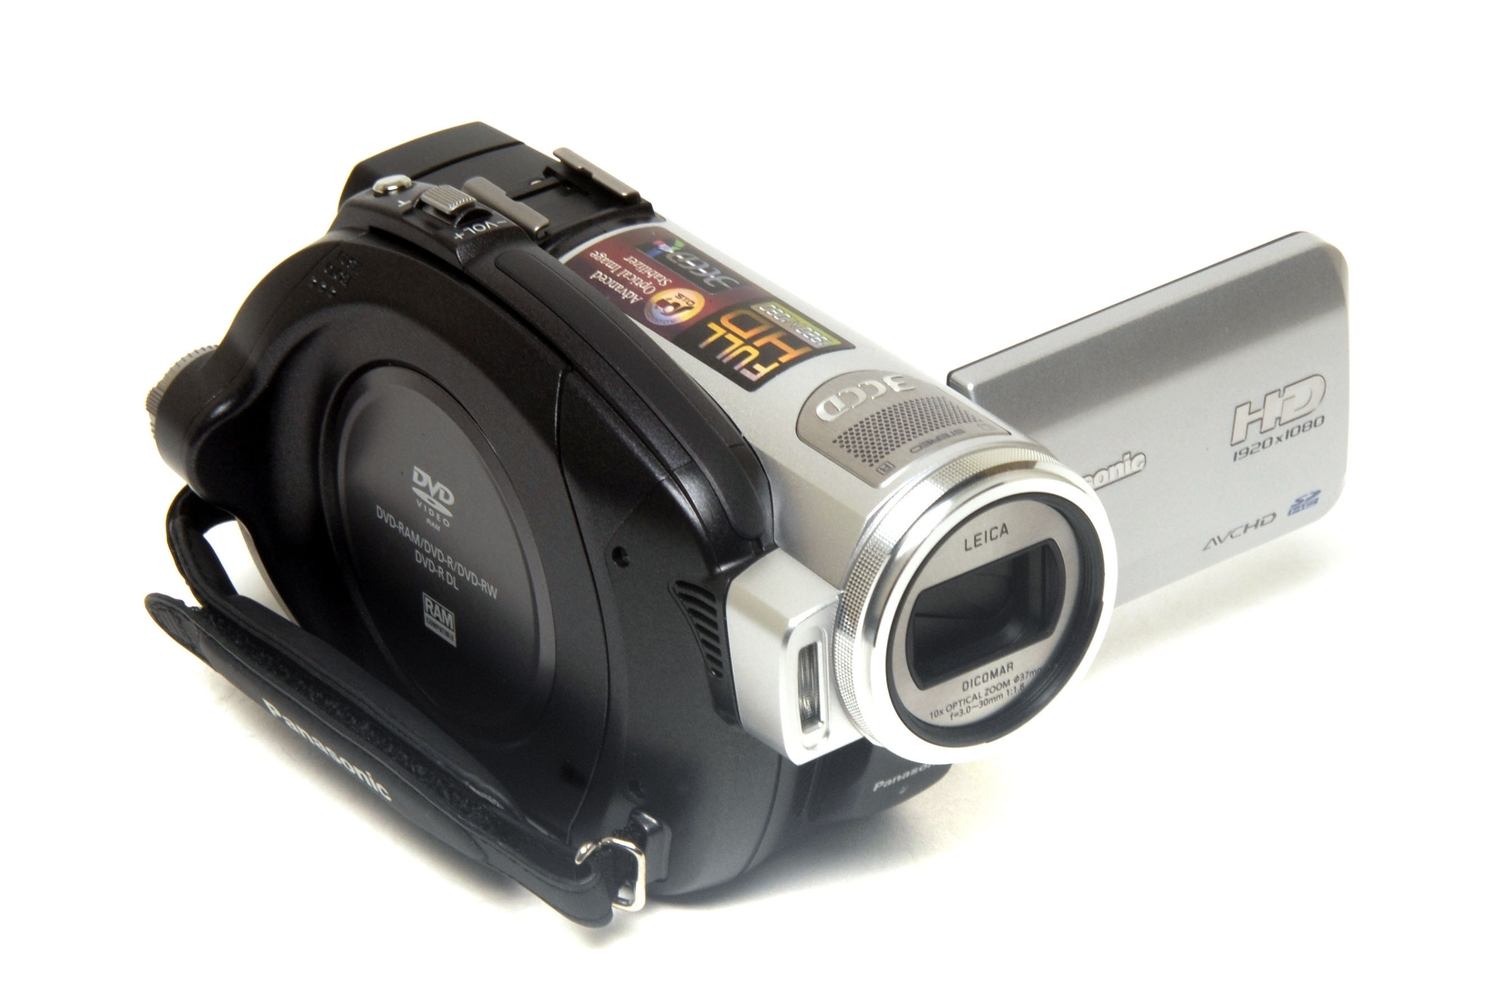 Latest Column at PC World - Reviewed Camcorders